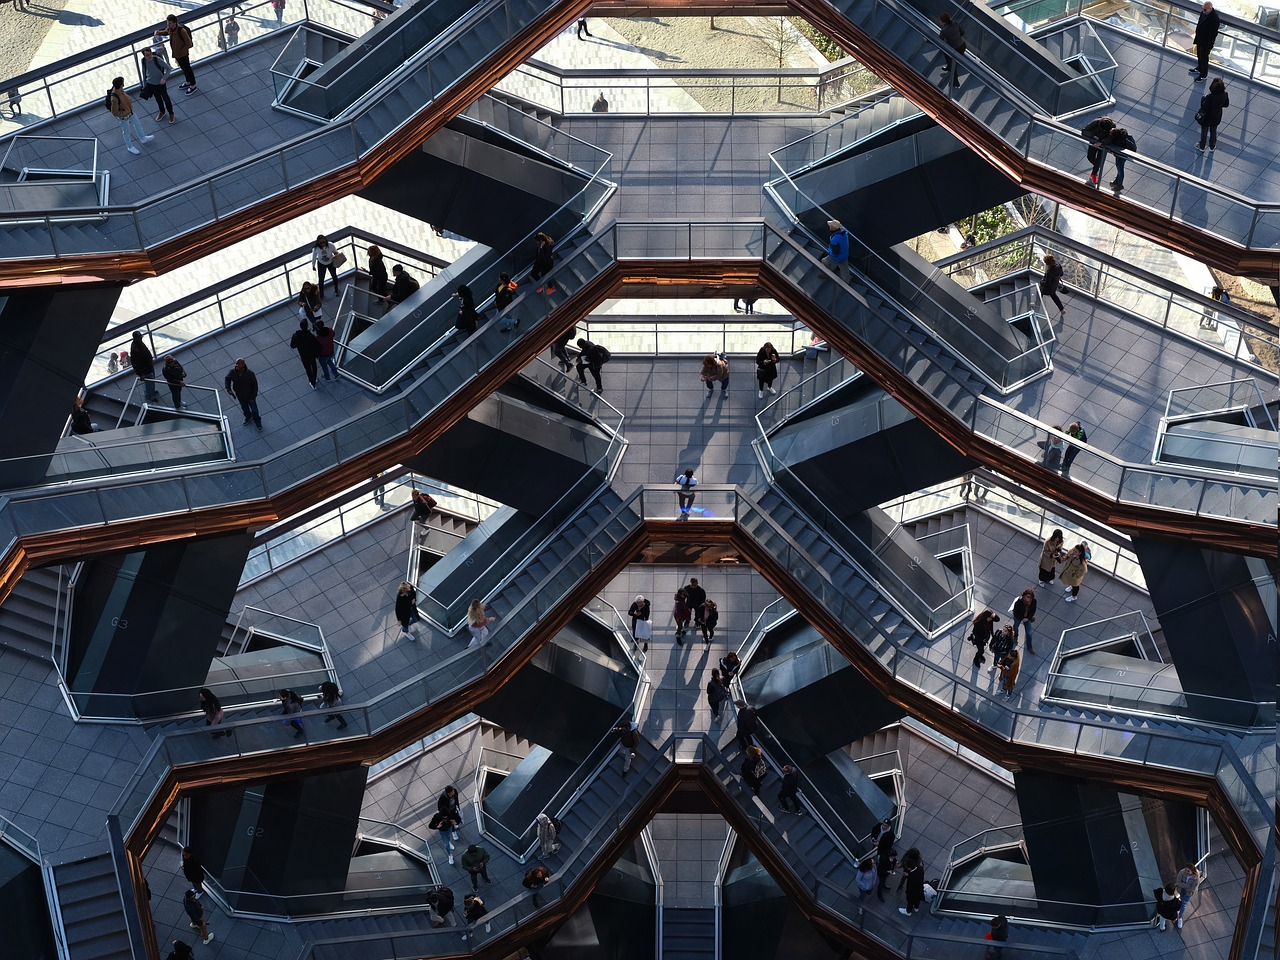 The Vessel – A Tourist's Stairway To Heaven